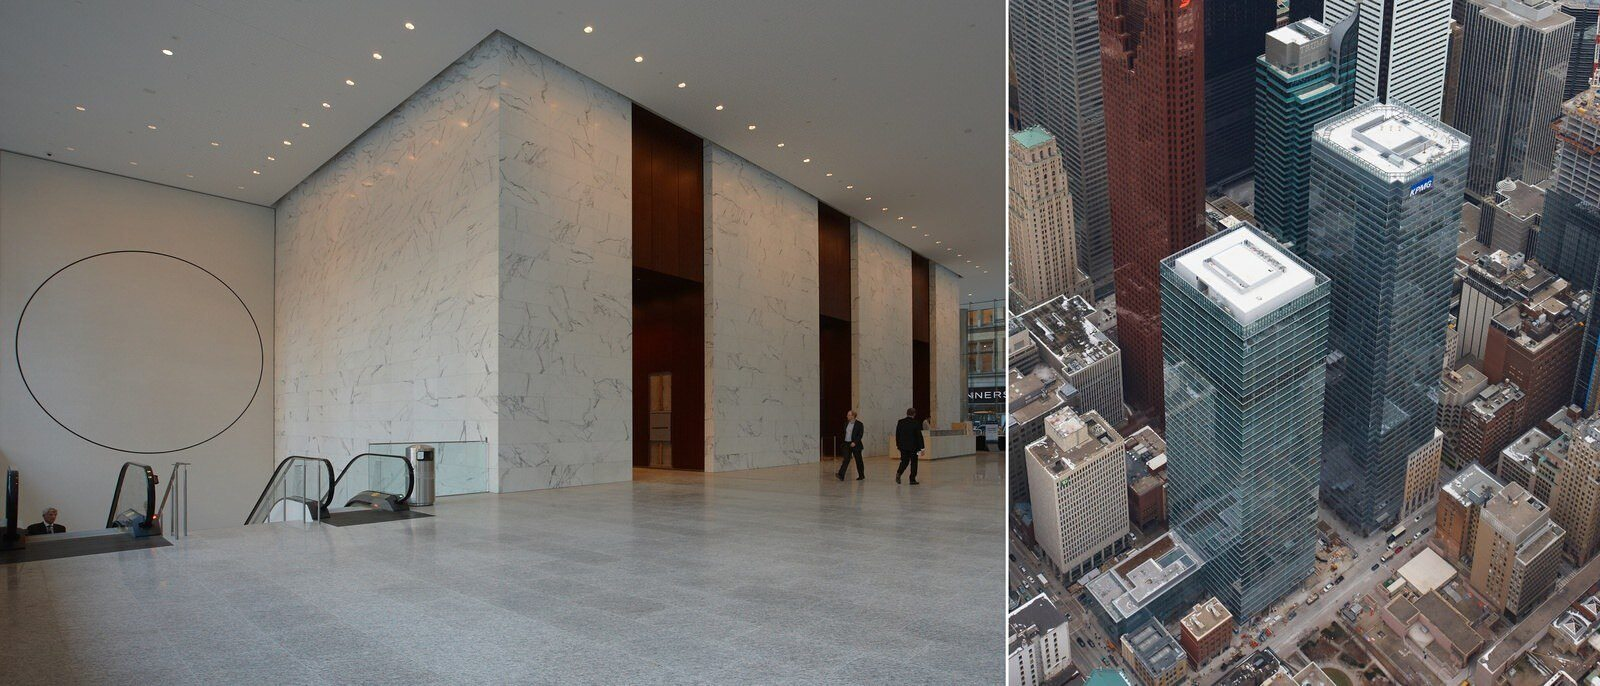 View of a large tiled lobby with elevators and another shot of an aerial view of the buildings.